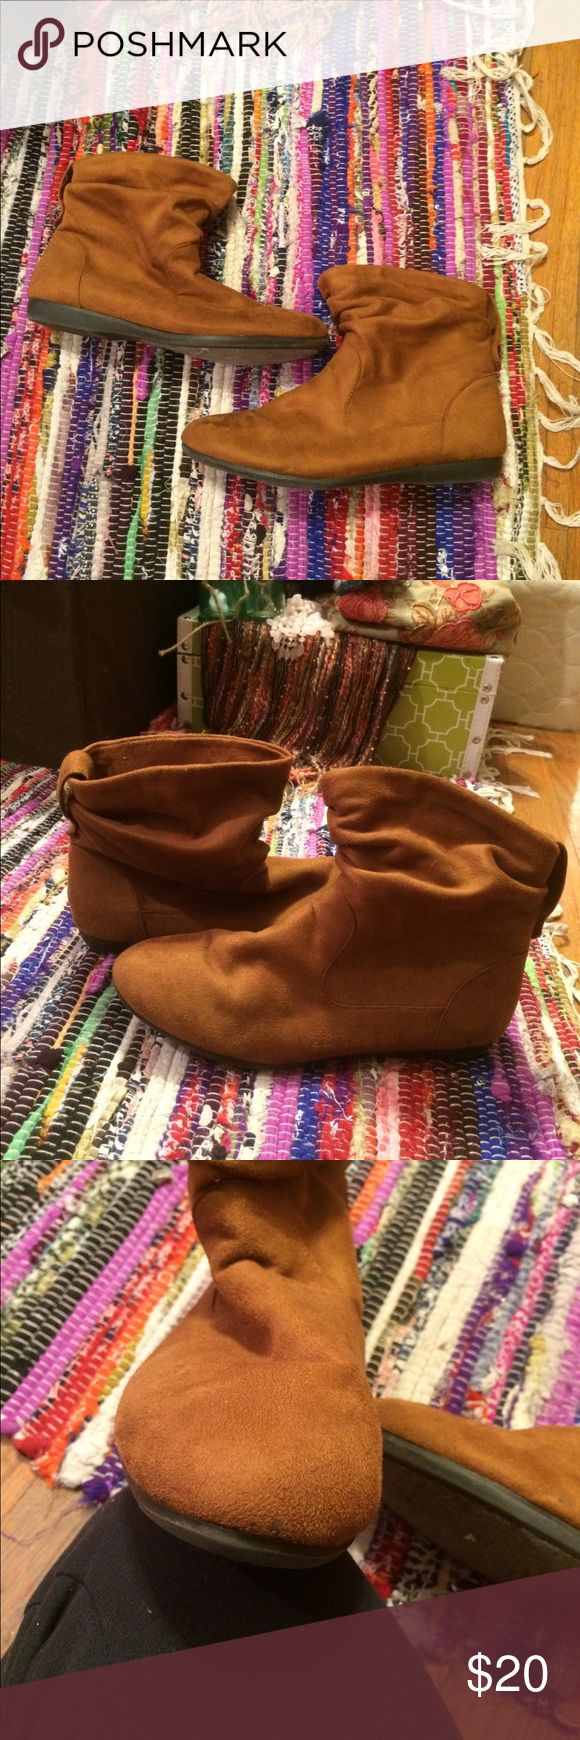 *$5 SALE item* Joe Boxer Ankle Booties So very comfy! Lightly worn. Only visible wear pictured on toe. Look like new! Awesome cognac color that looks great with everything! Perfect for fall!  Add to a bundle with an item priced $25 or more and they're just five bucks! 🍂🍂🍂 Joe Boxer Shoes Ankle Boots & Booties